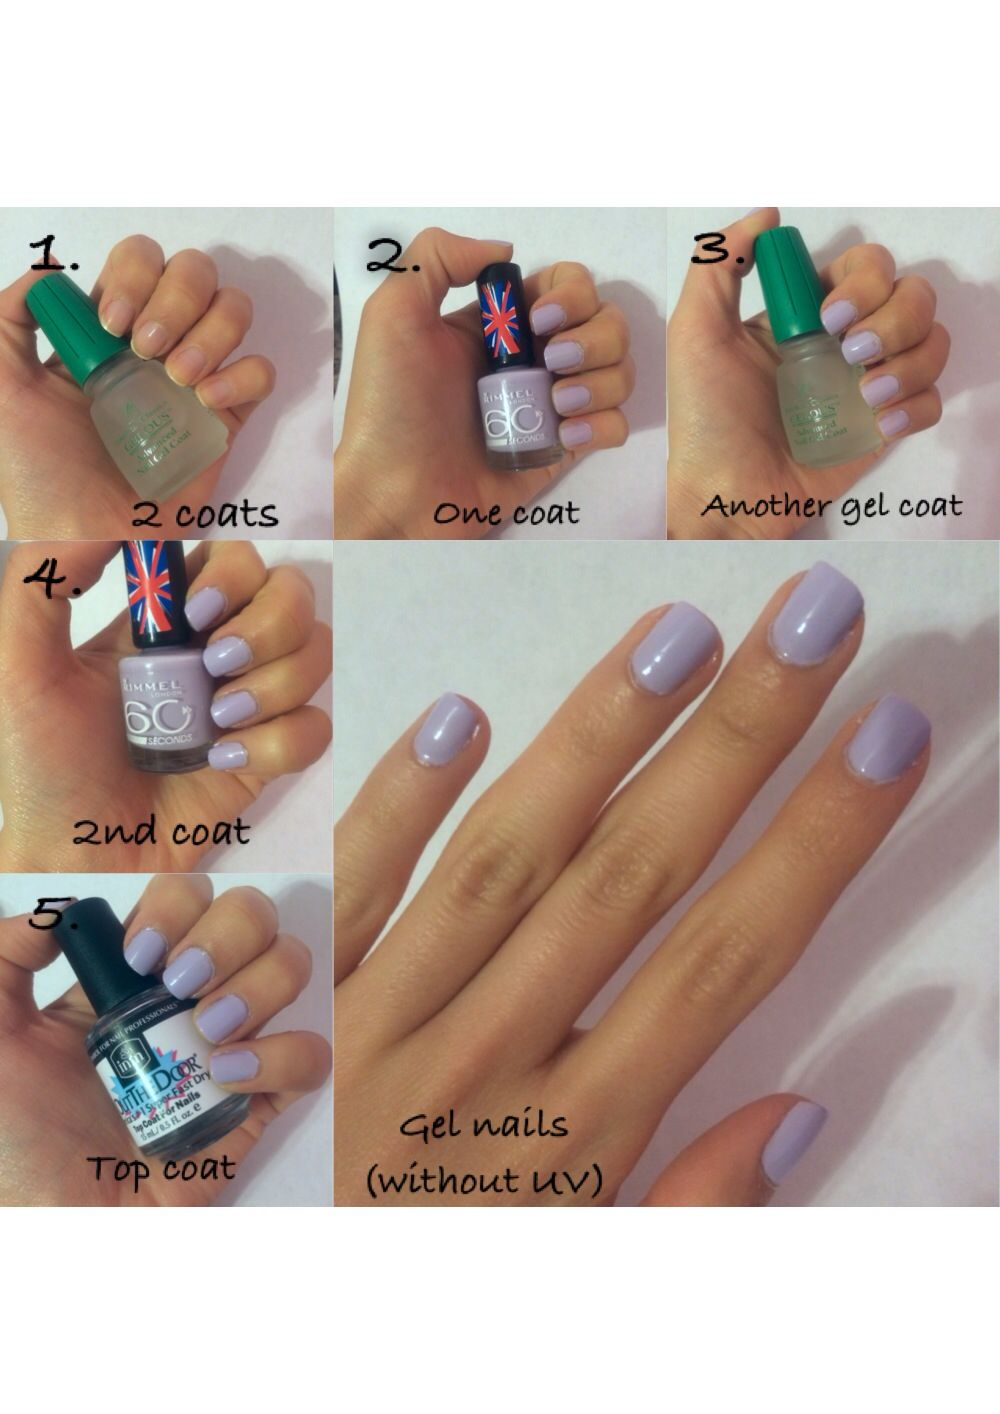 If you bring your own acryllic kit to the nail salon will it be cheaper?